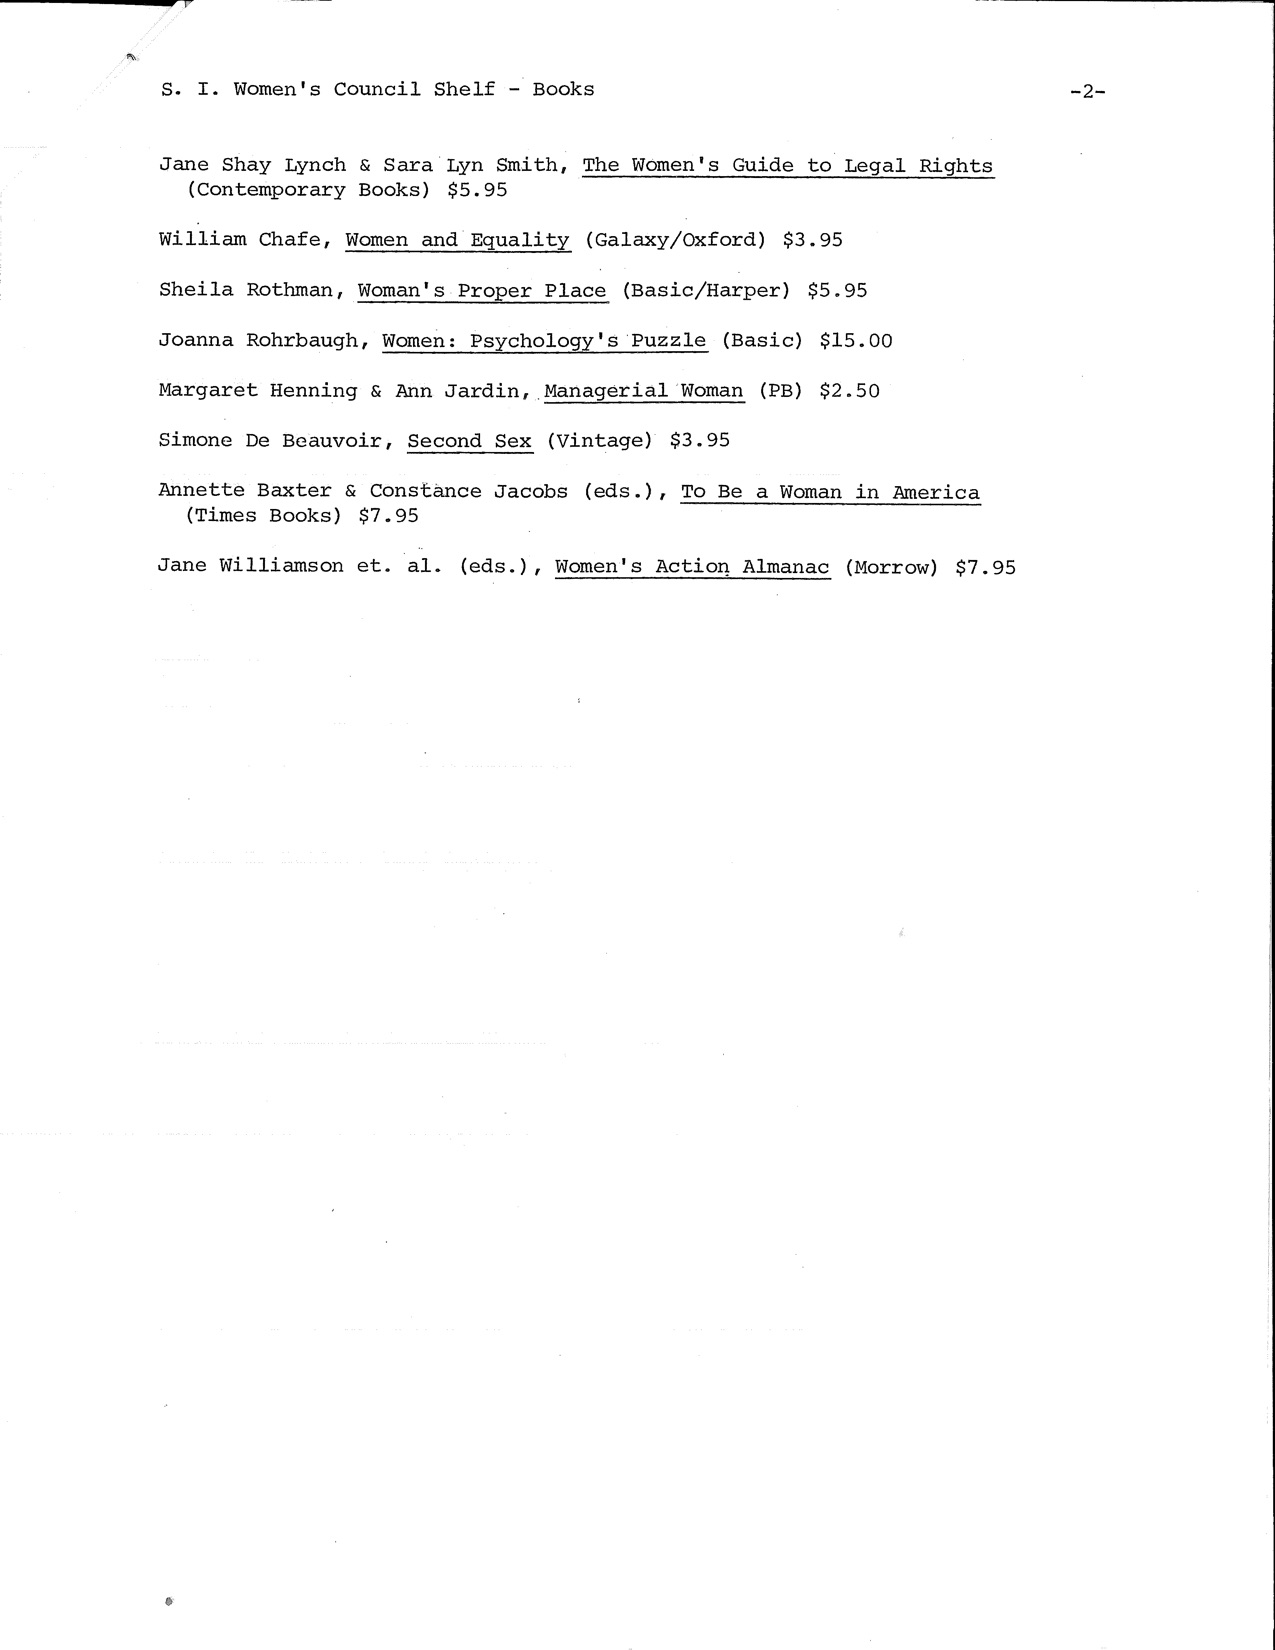 A list of books to be purchased for the Smithsonian Women's Council Library.